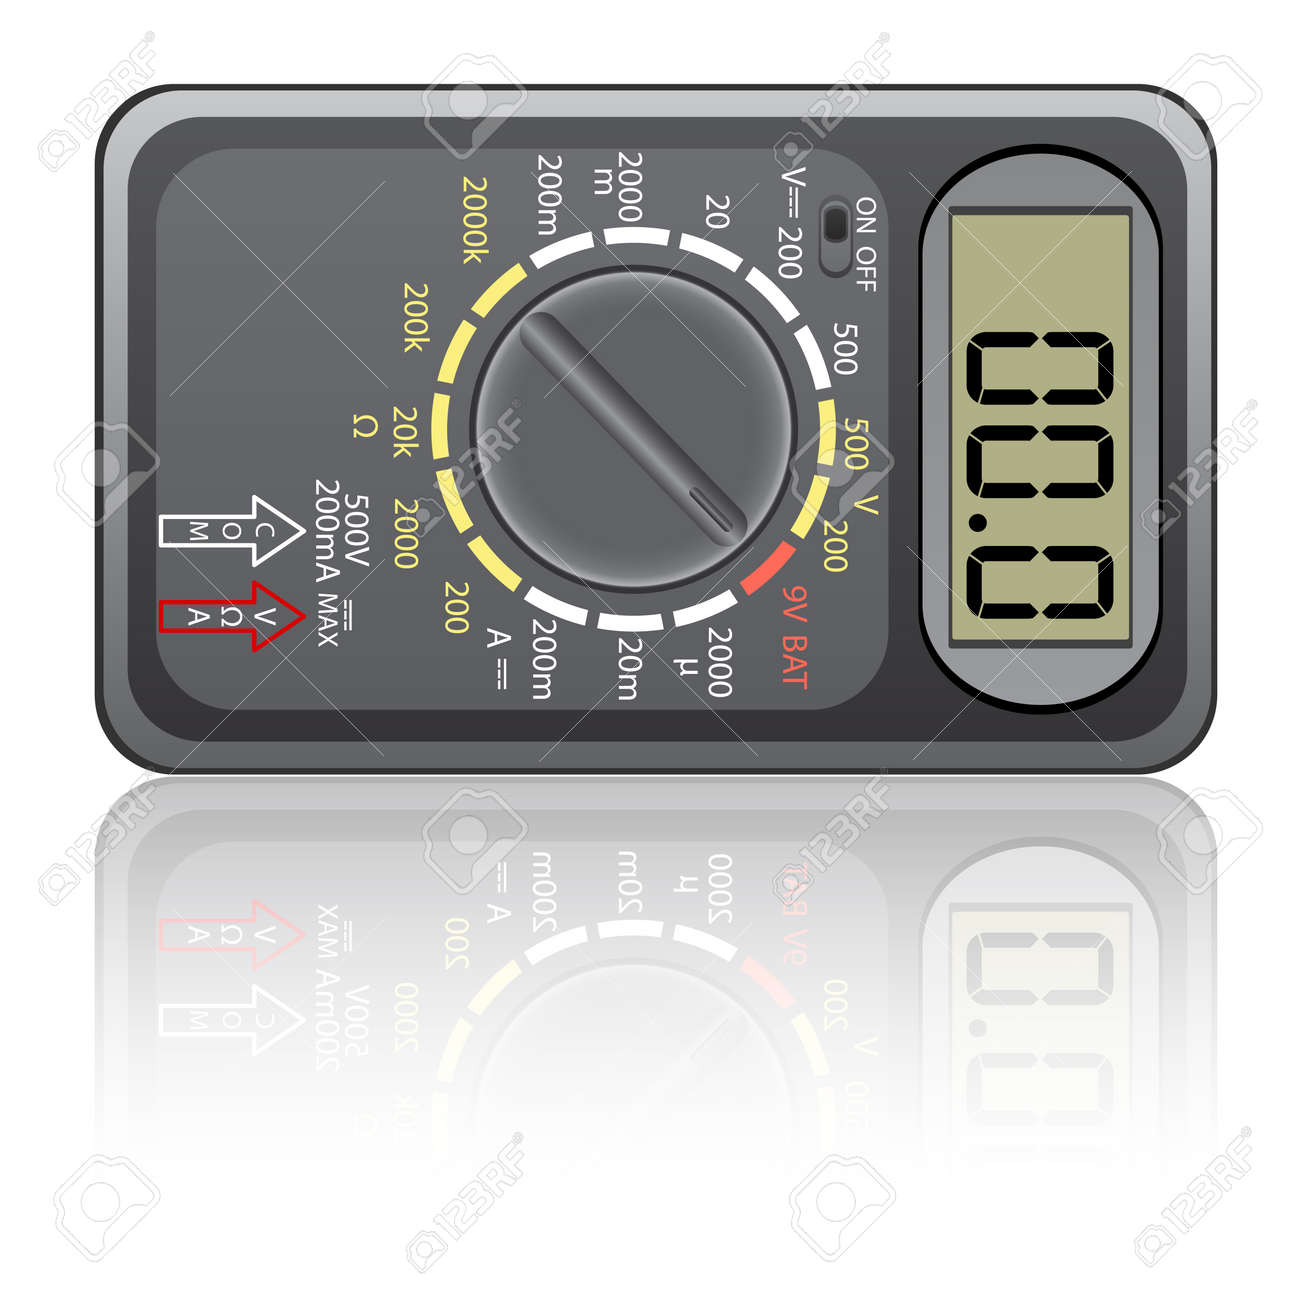 Digital multimeter. Vector illustration. Isolated on white background. Stock Vector - 12481791